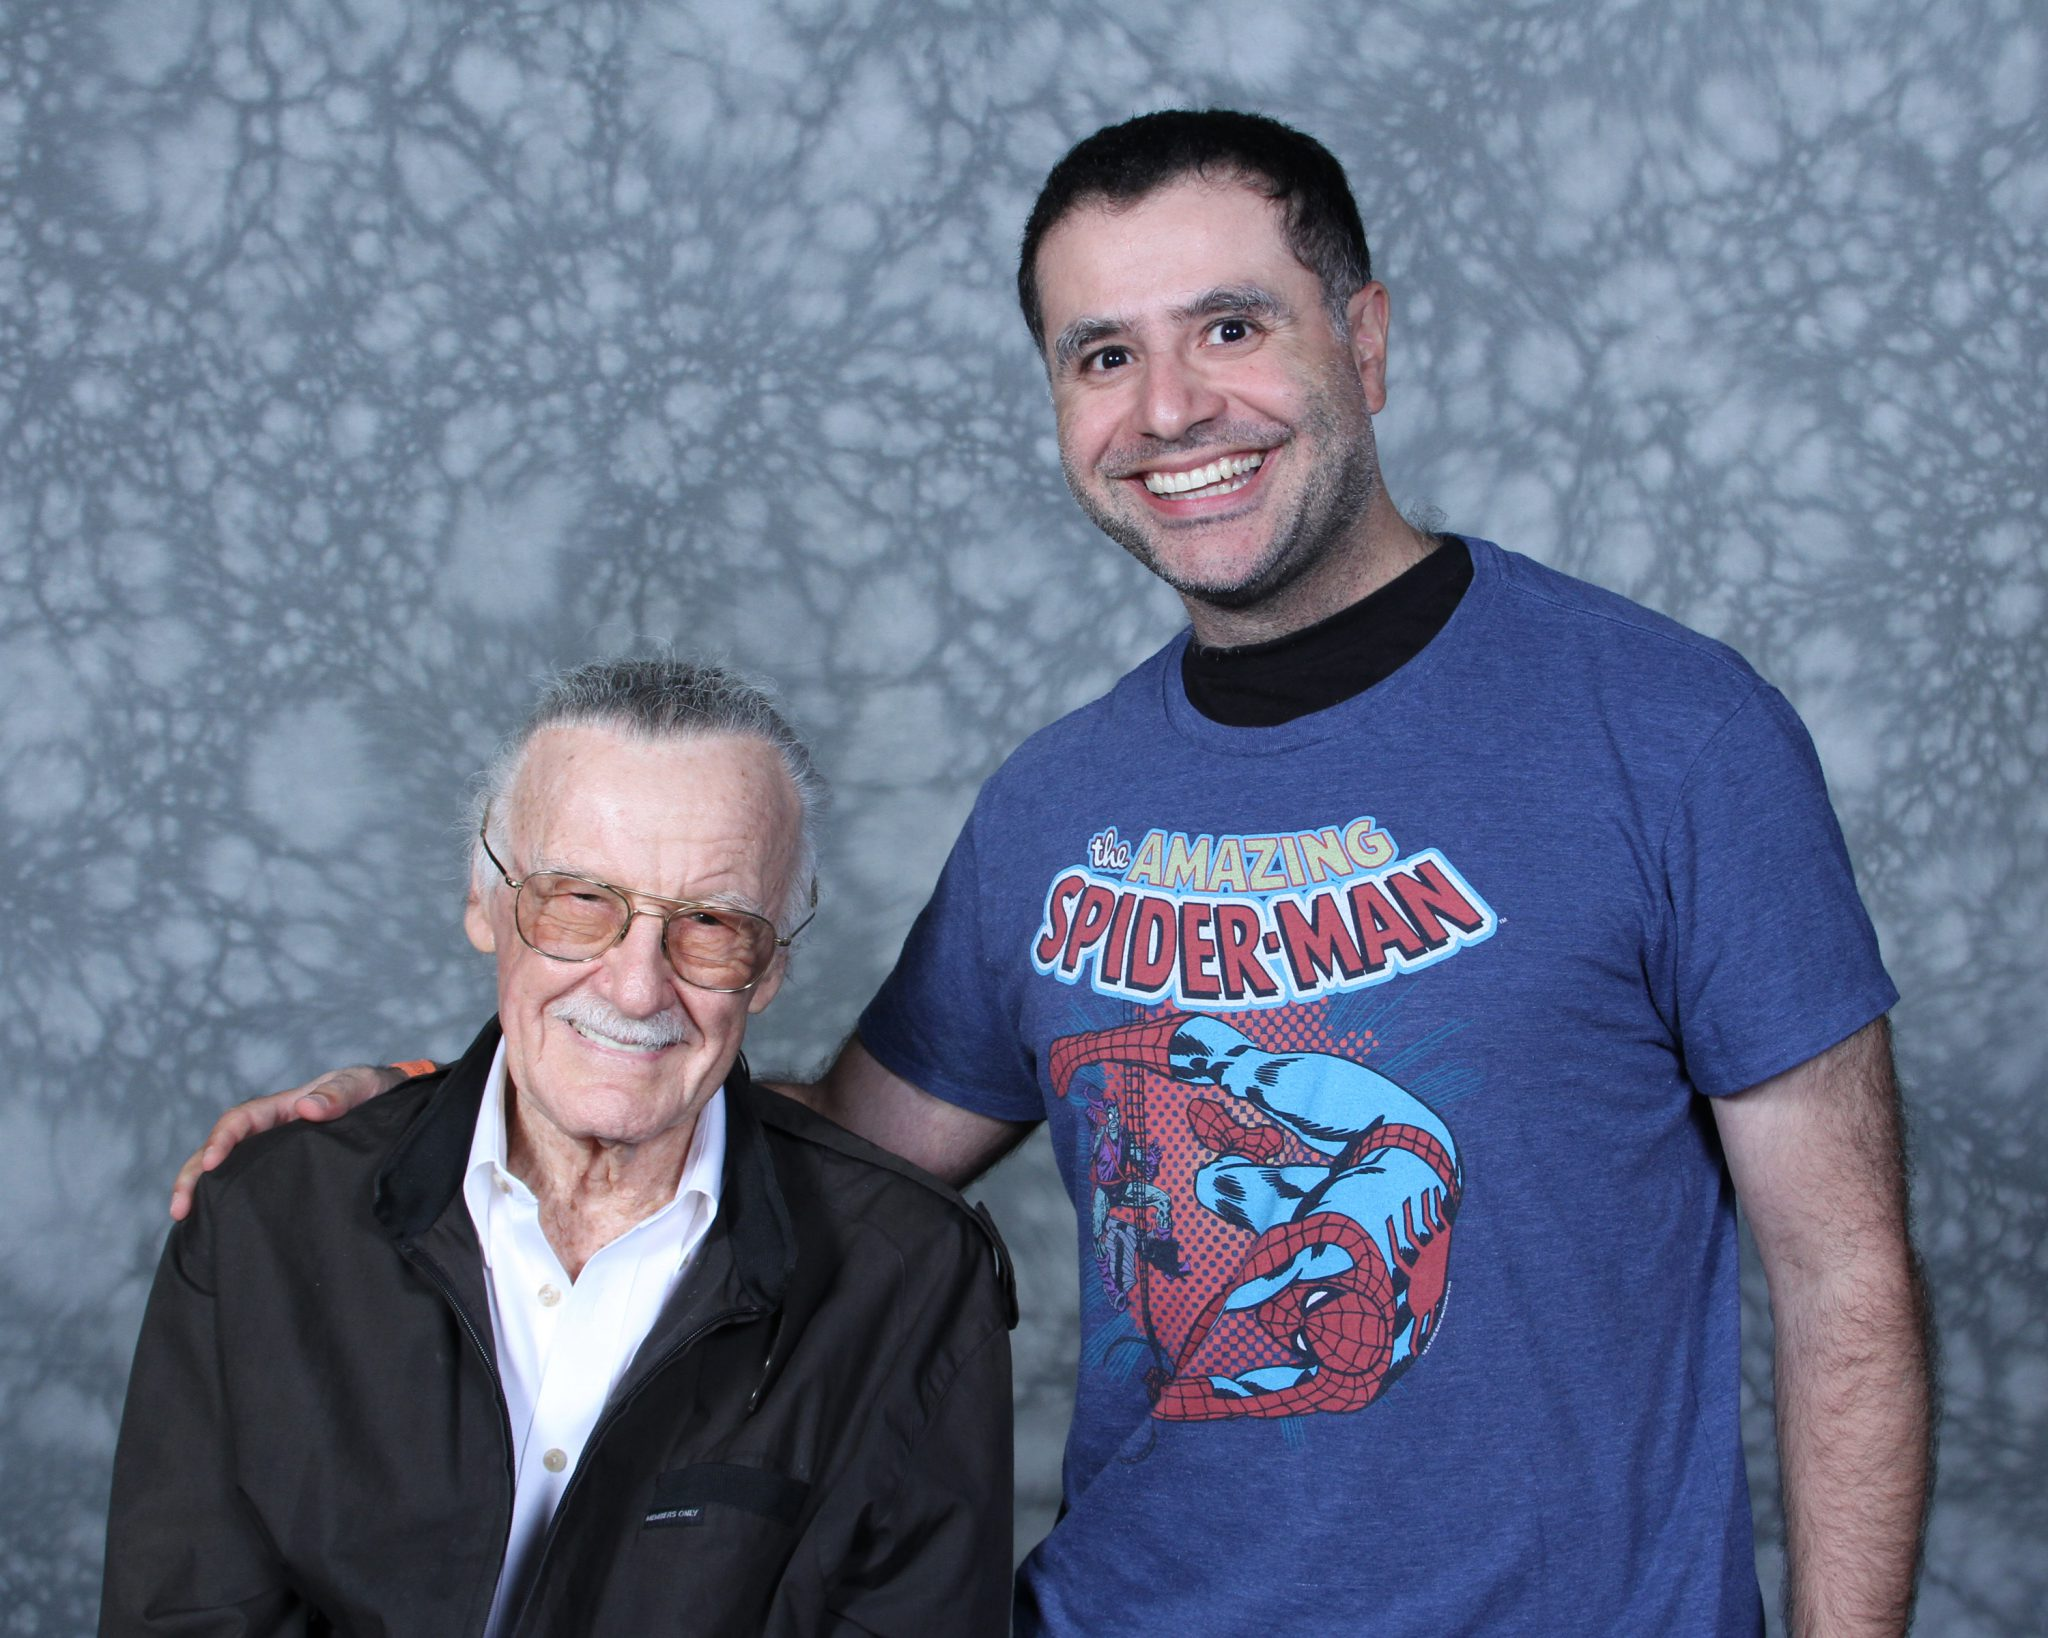 Stan Lee with Mac, Founder and Lead Guide of Maction Planet